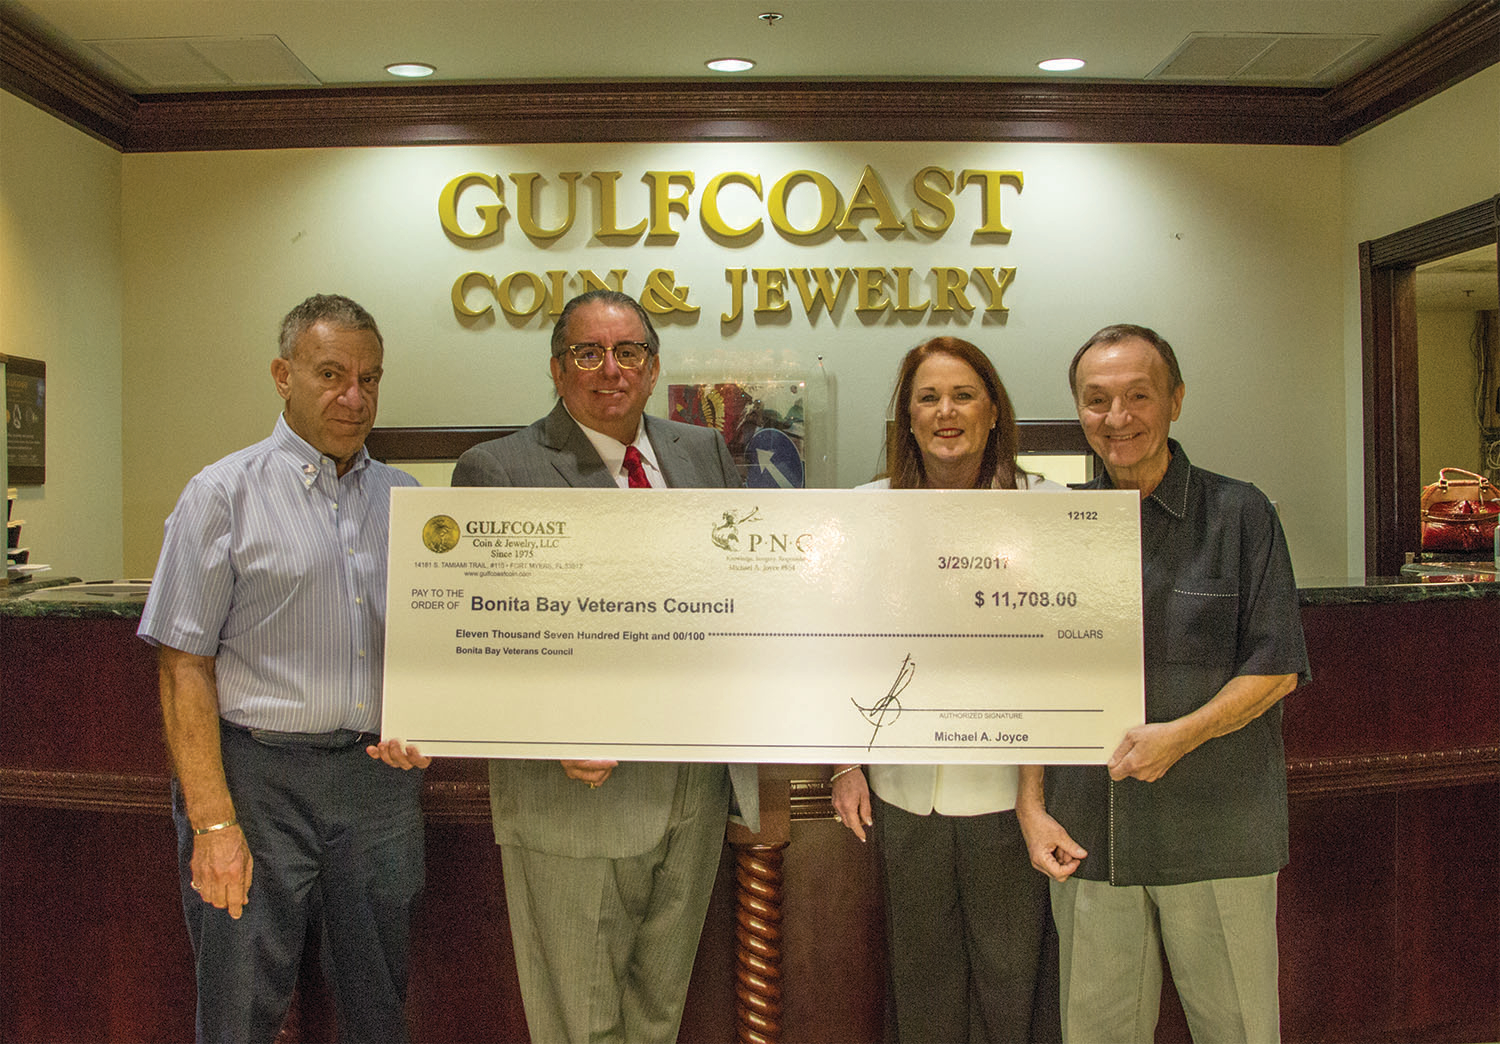 Gulfcoast coin jewelry in fort myers fl whitepages for Gulf coast coin and jewelry